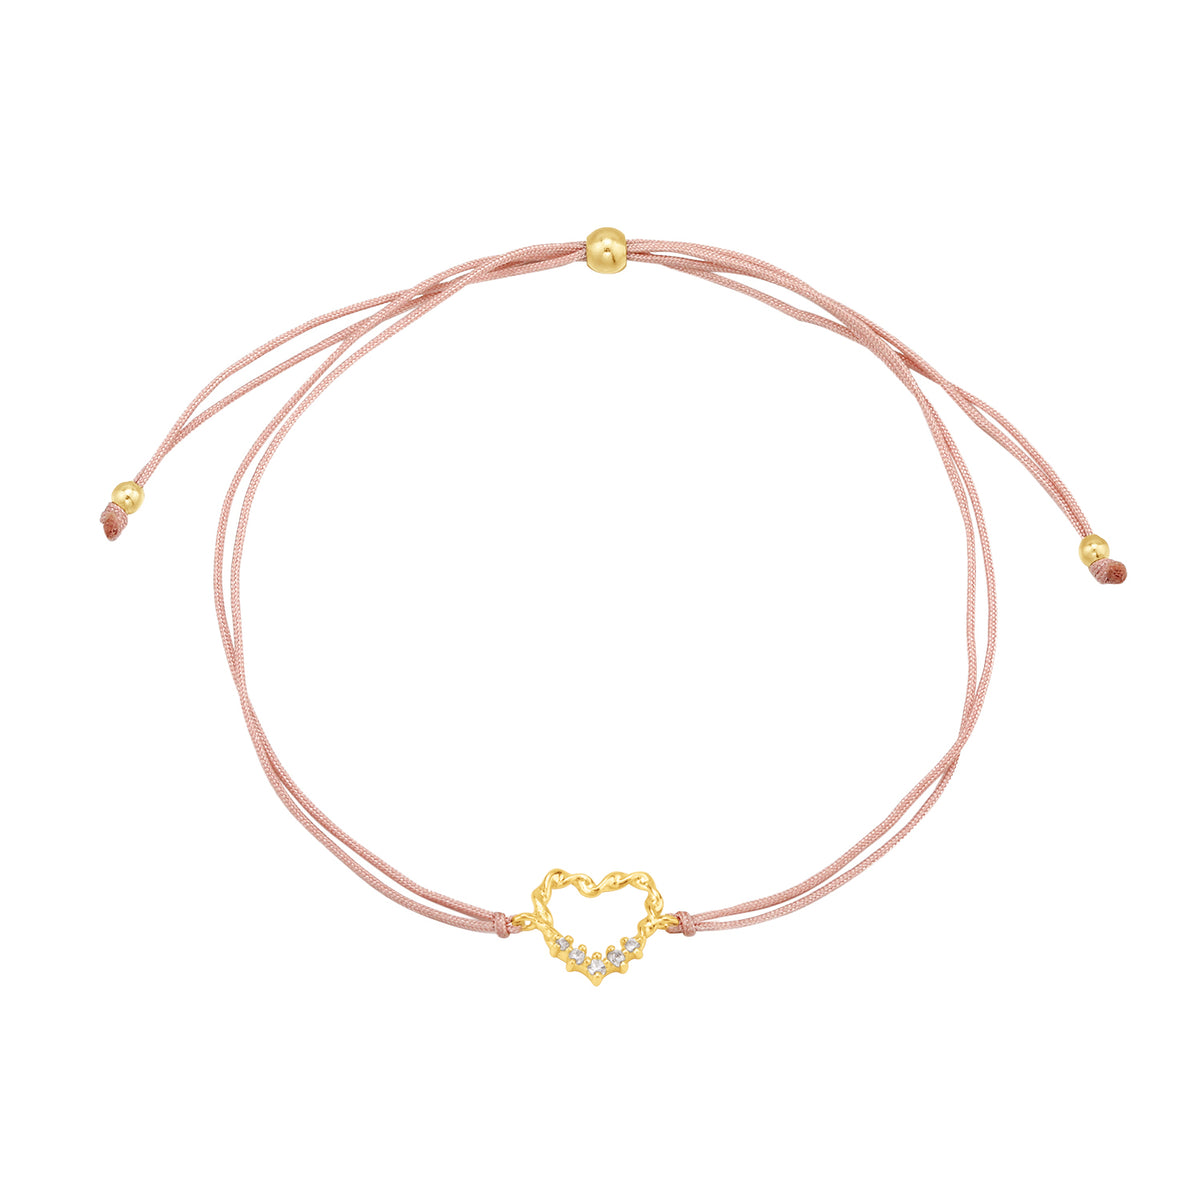 Christmas Selection | Xmas Love Bracelet | White CZ | Beige Thread & 14K Gold Plated 925 Silver